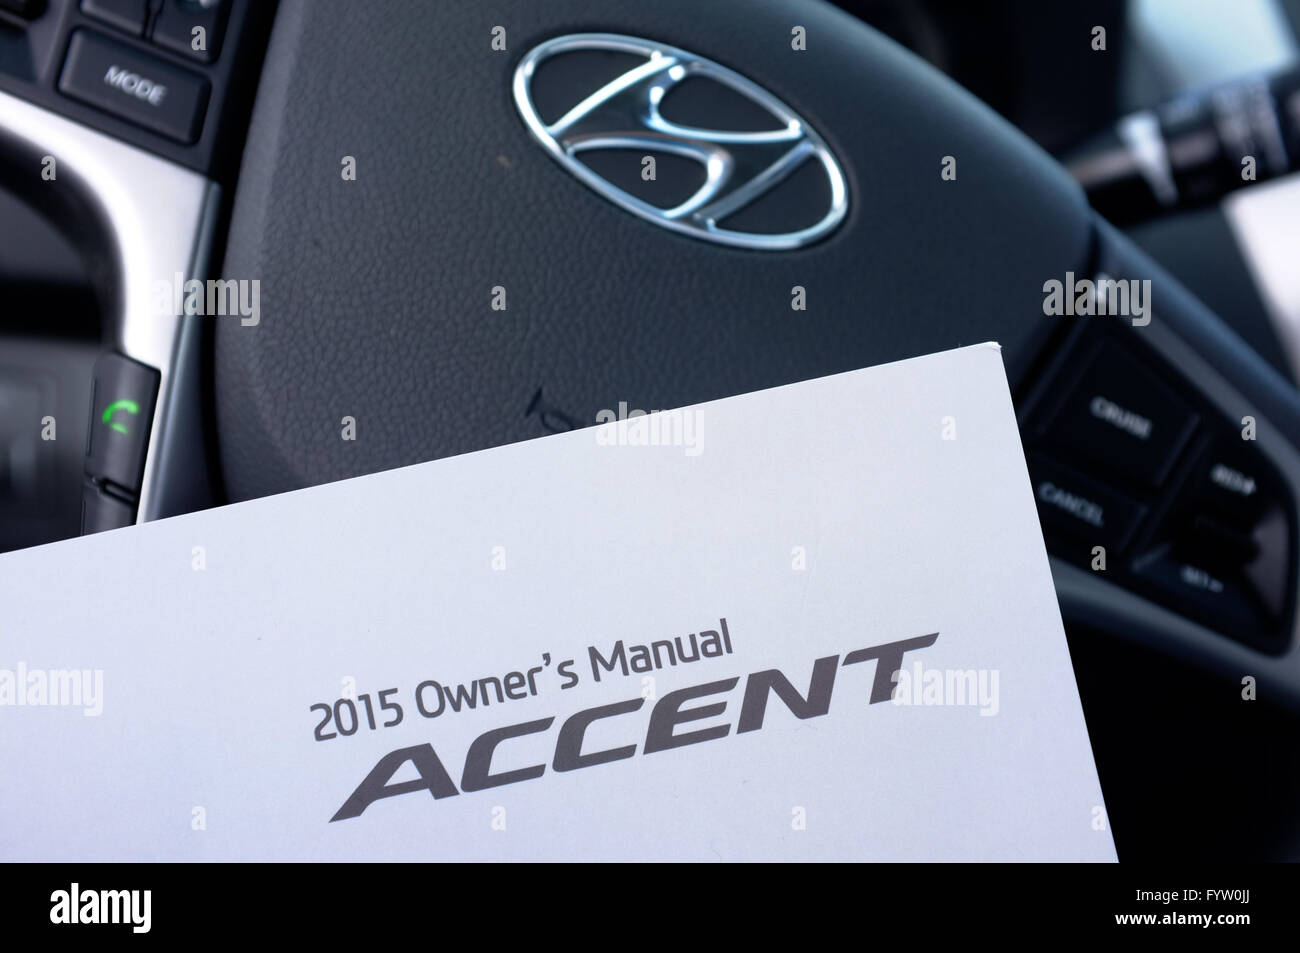 A Hyundai Accent Owner's Manual in front of a Hyundai steering wheel. -  Stock Image